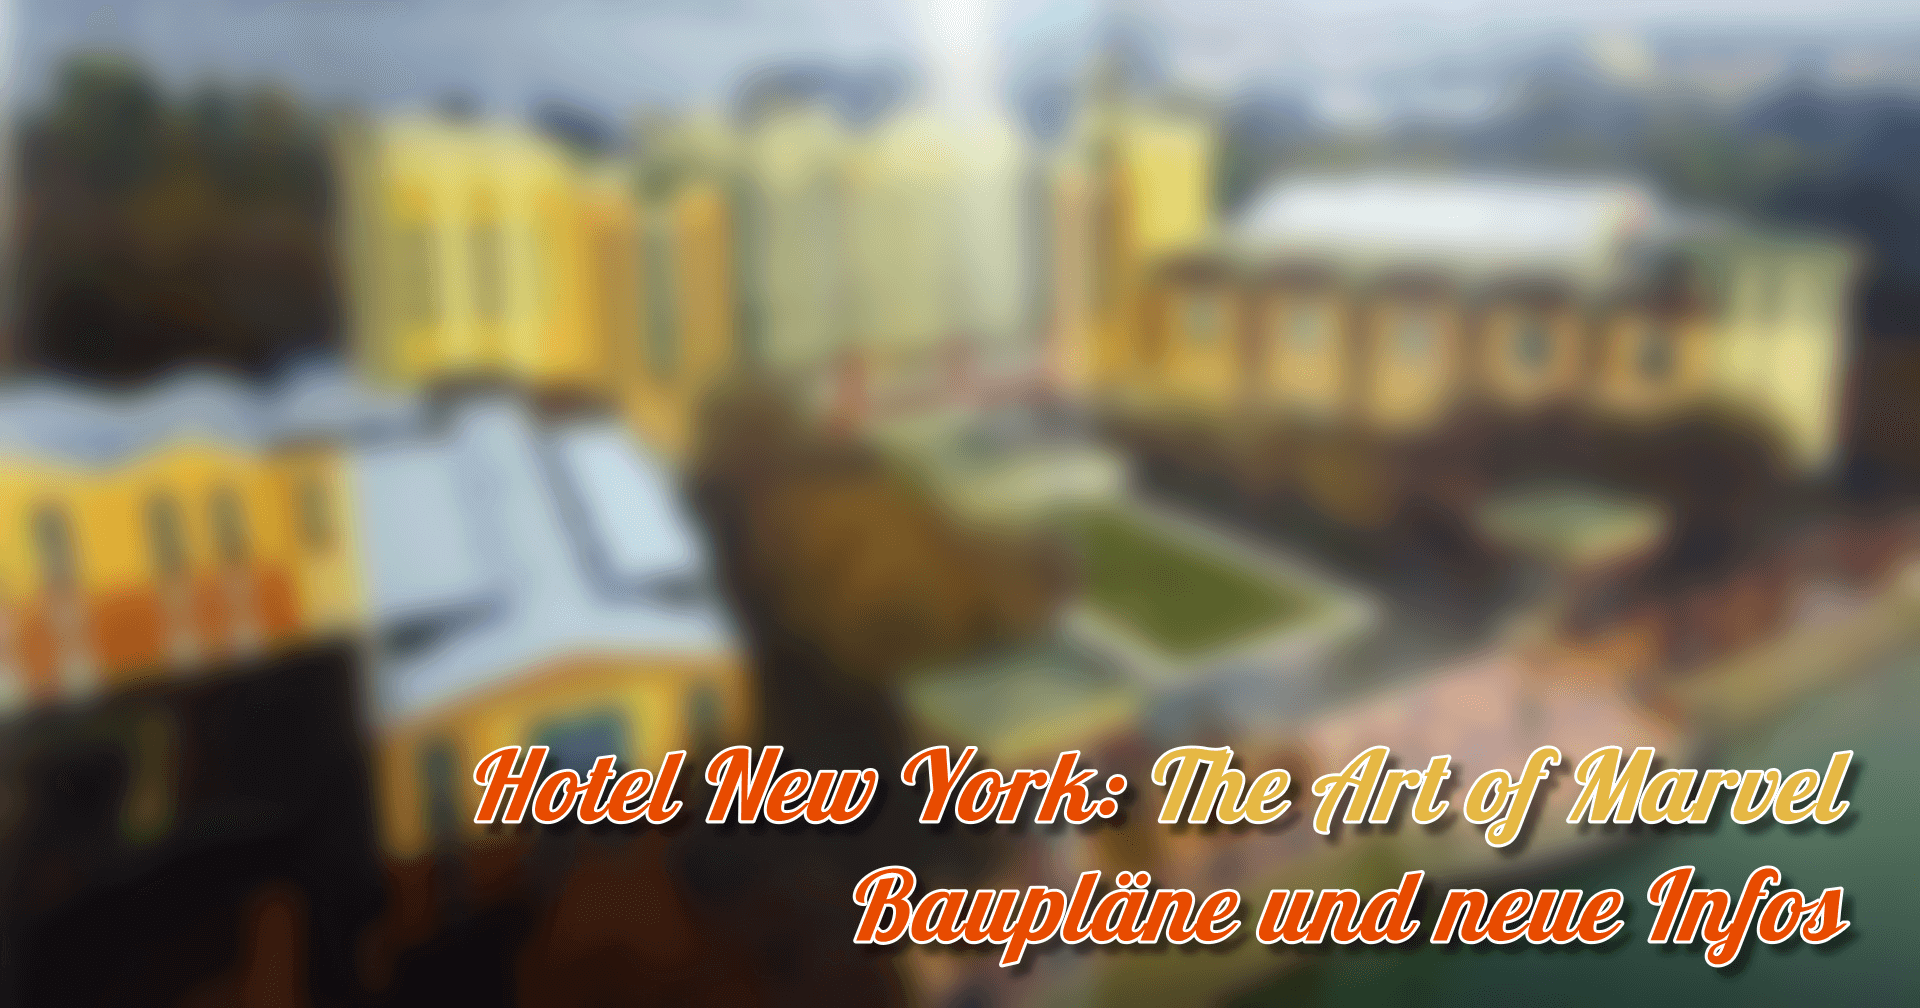 Hotel New York: The Art of Marvel Baupläne und neue Infos